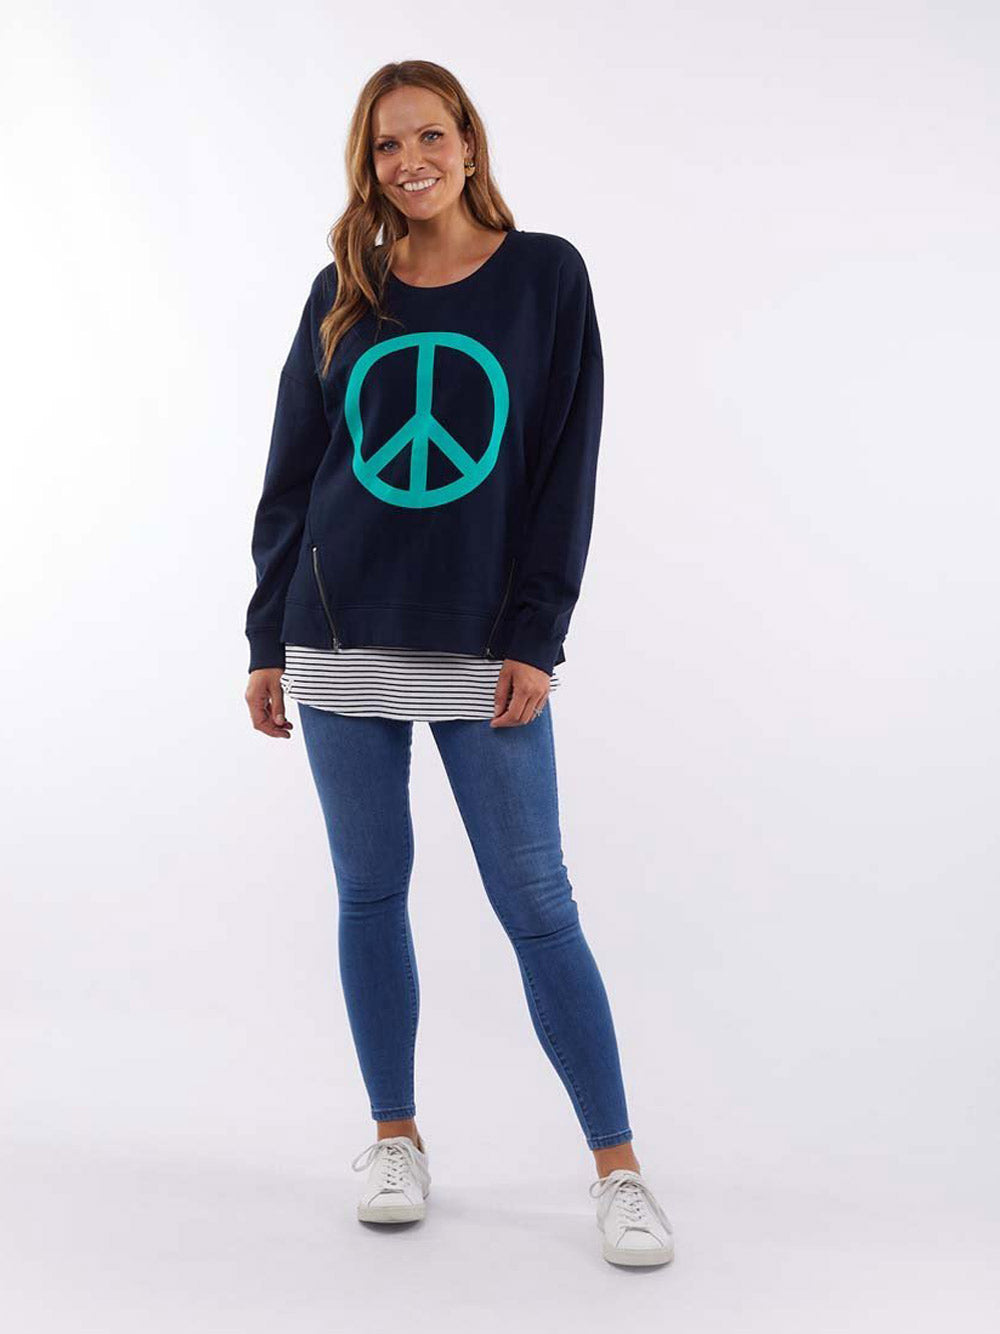 ELM LIFESTYLE Love & Peace Crew - NAVY